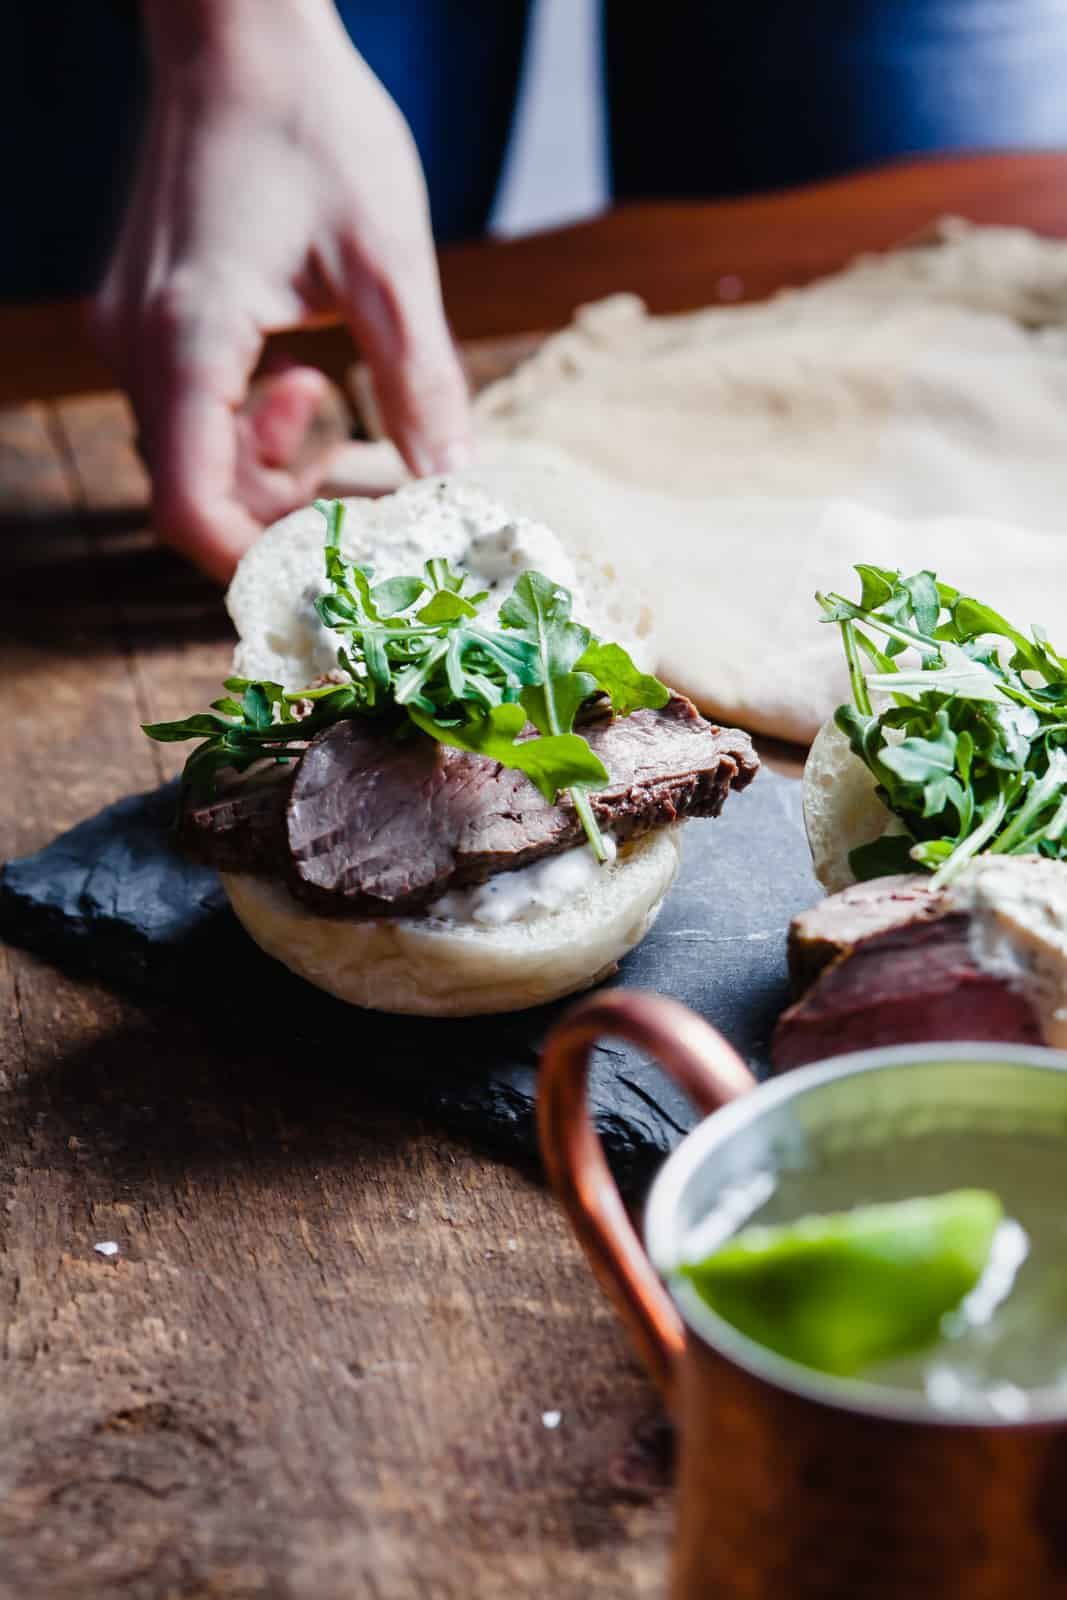 Person setting a table with a beef tenderloin sandwich and a Moscow mule in a copper mug on a wooden table